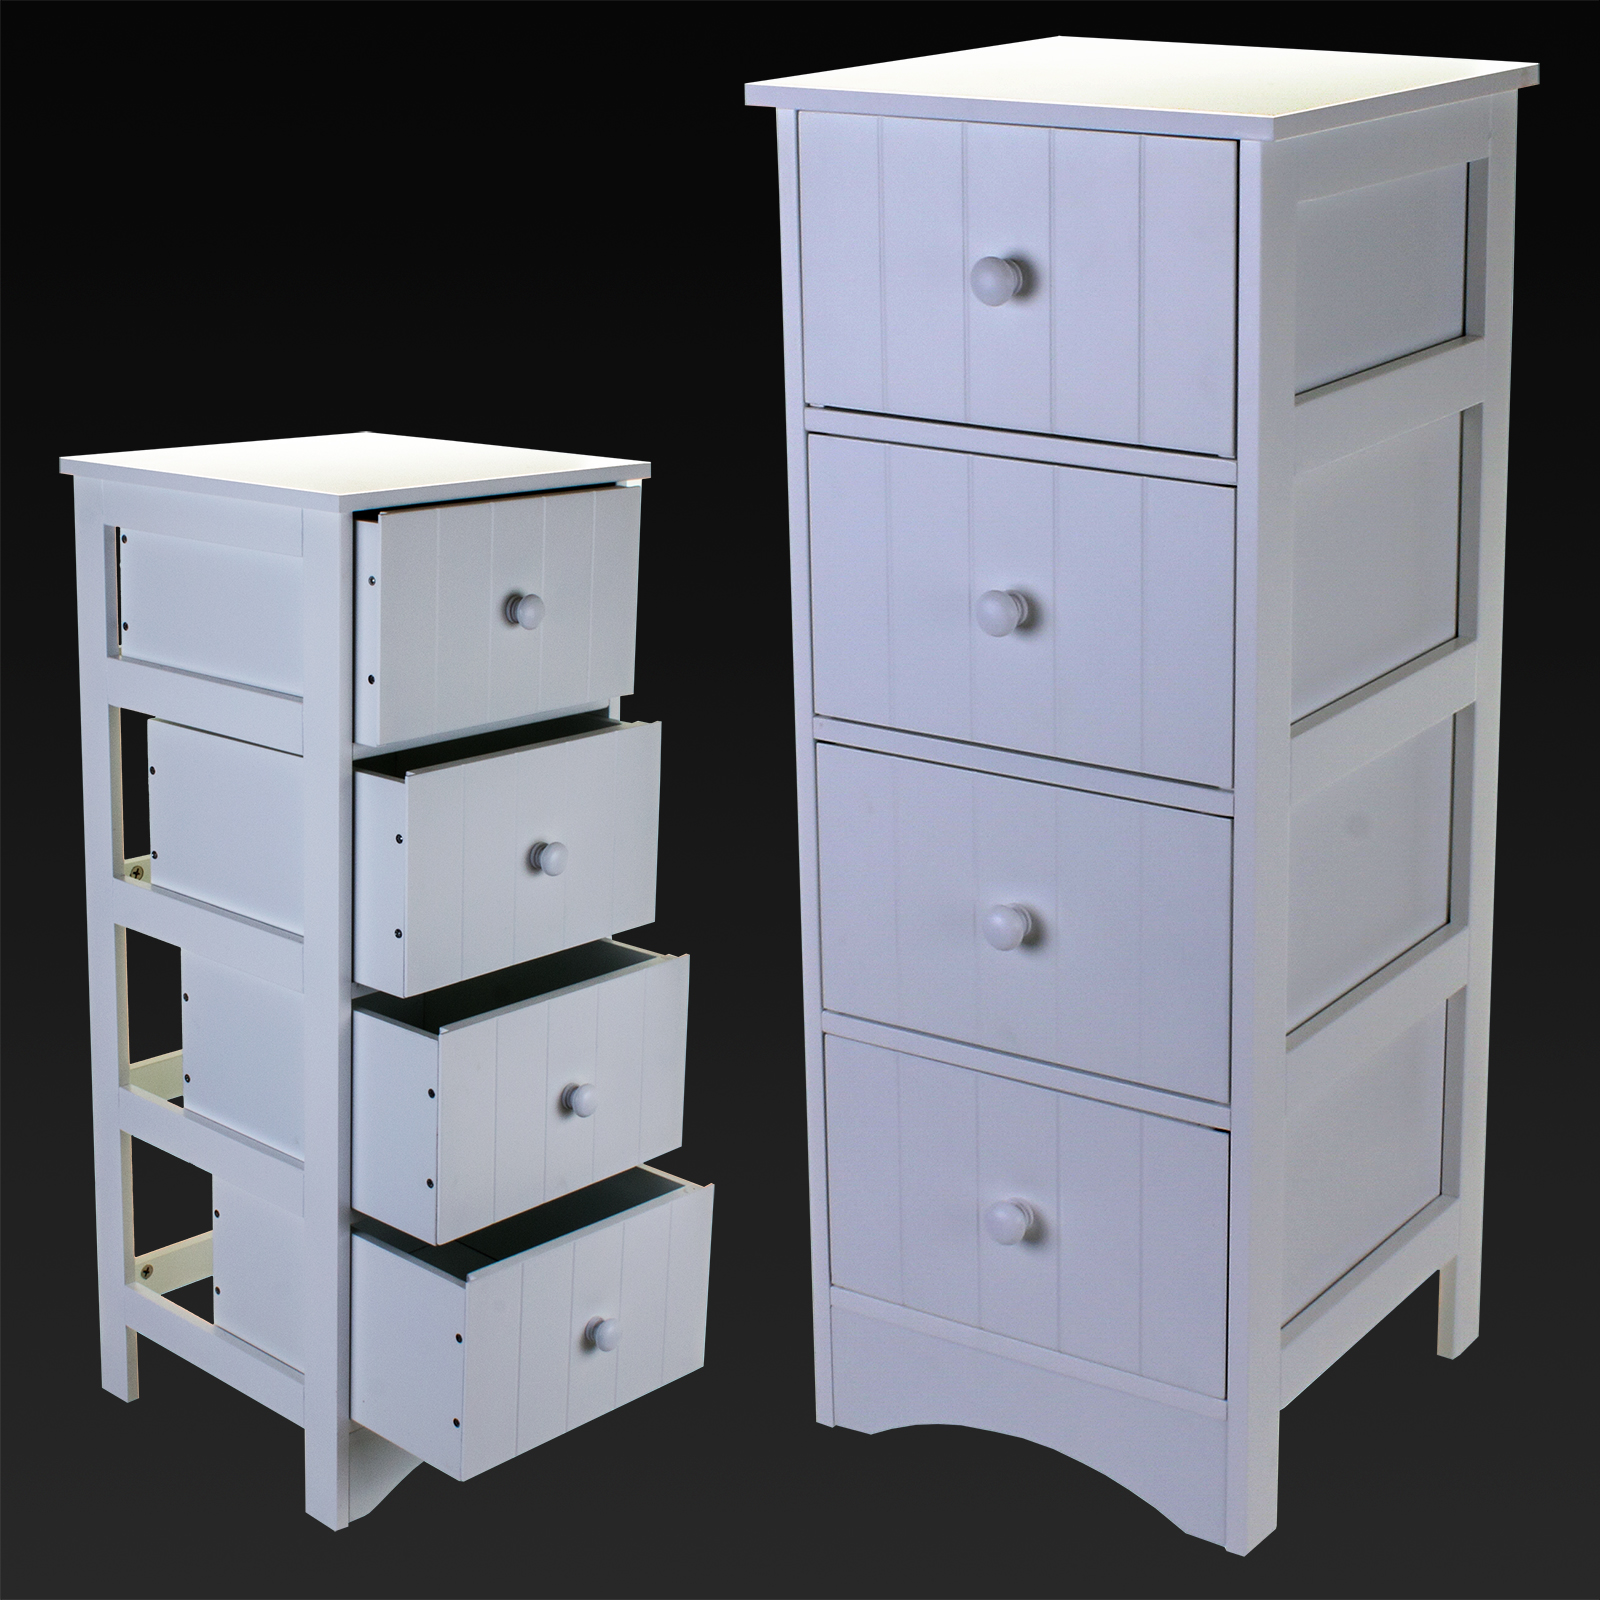 4 DRAWER CABINET STORAGE UNIT WHITE WOODEN BATHROOM CHEST